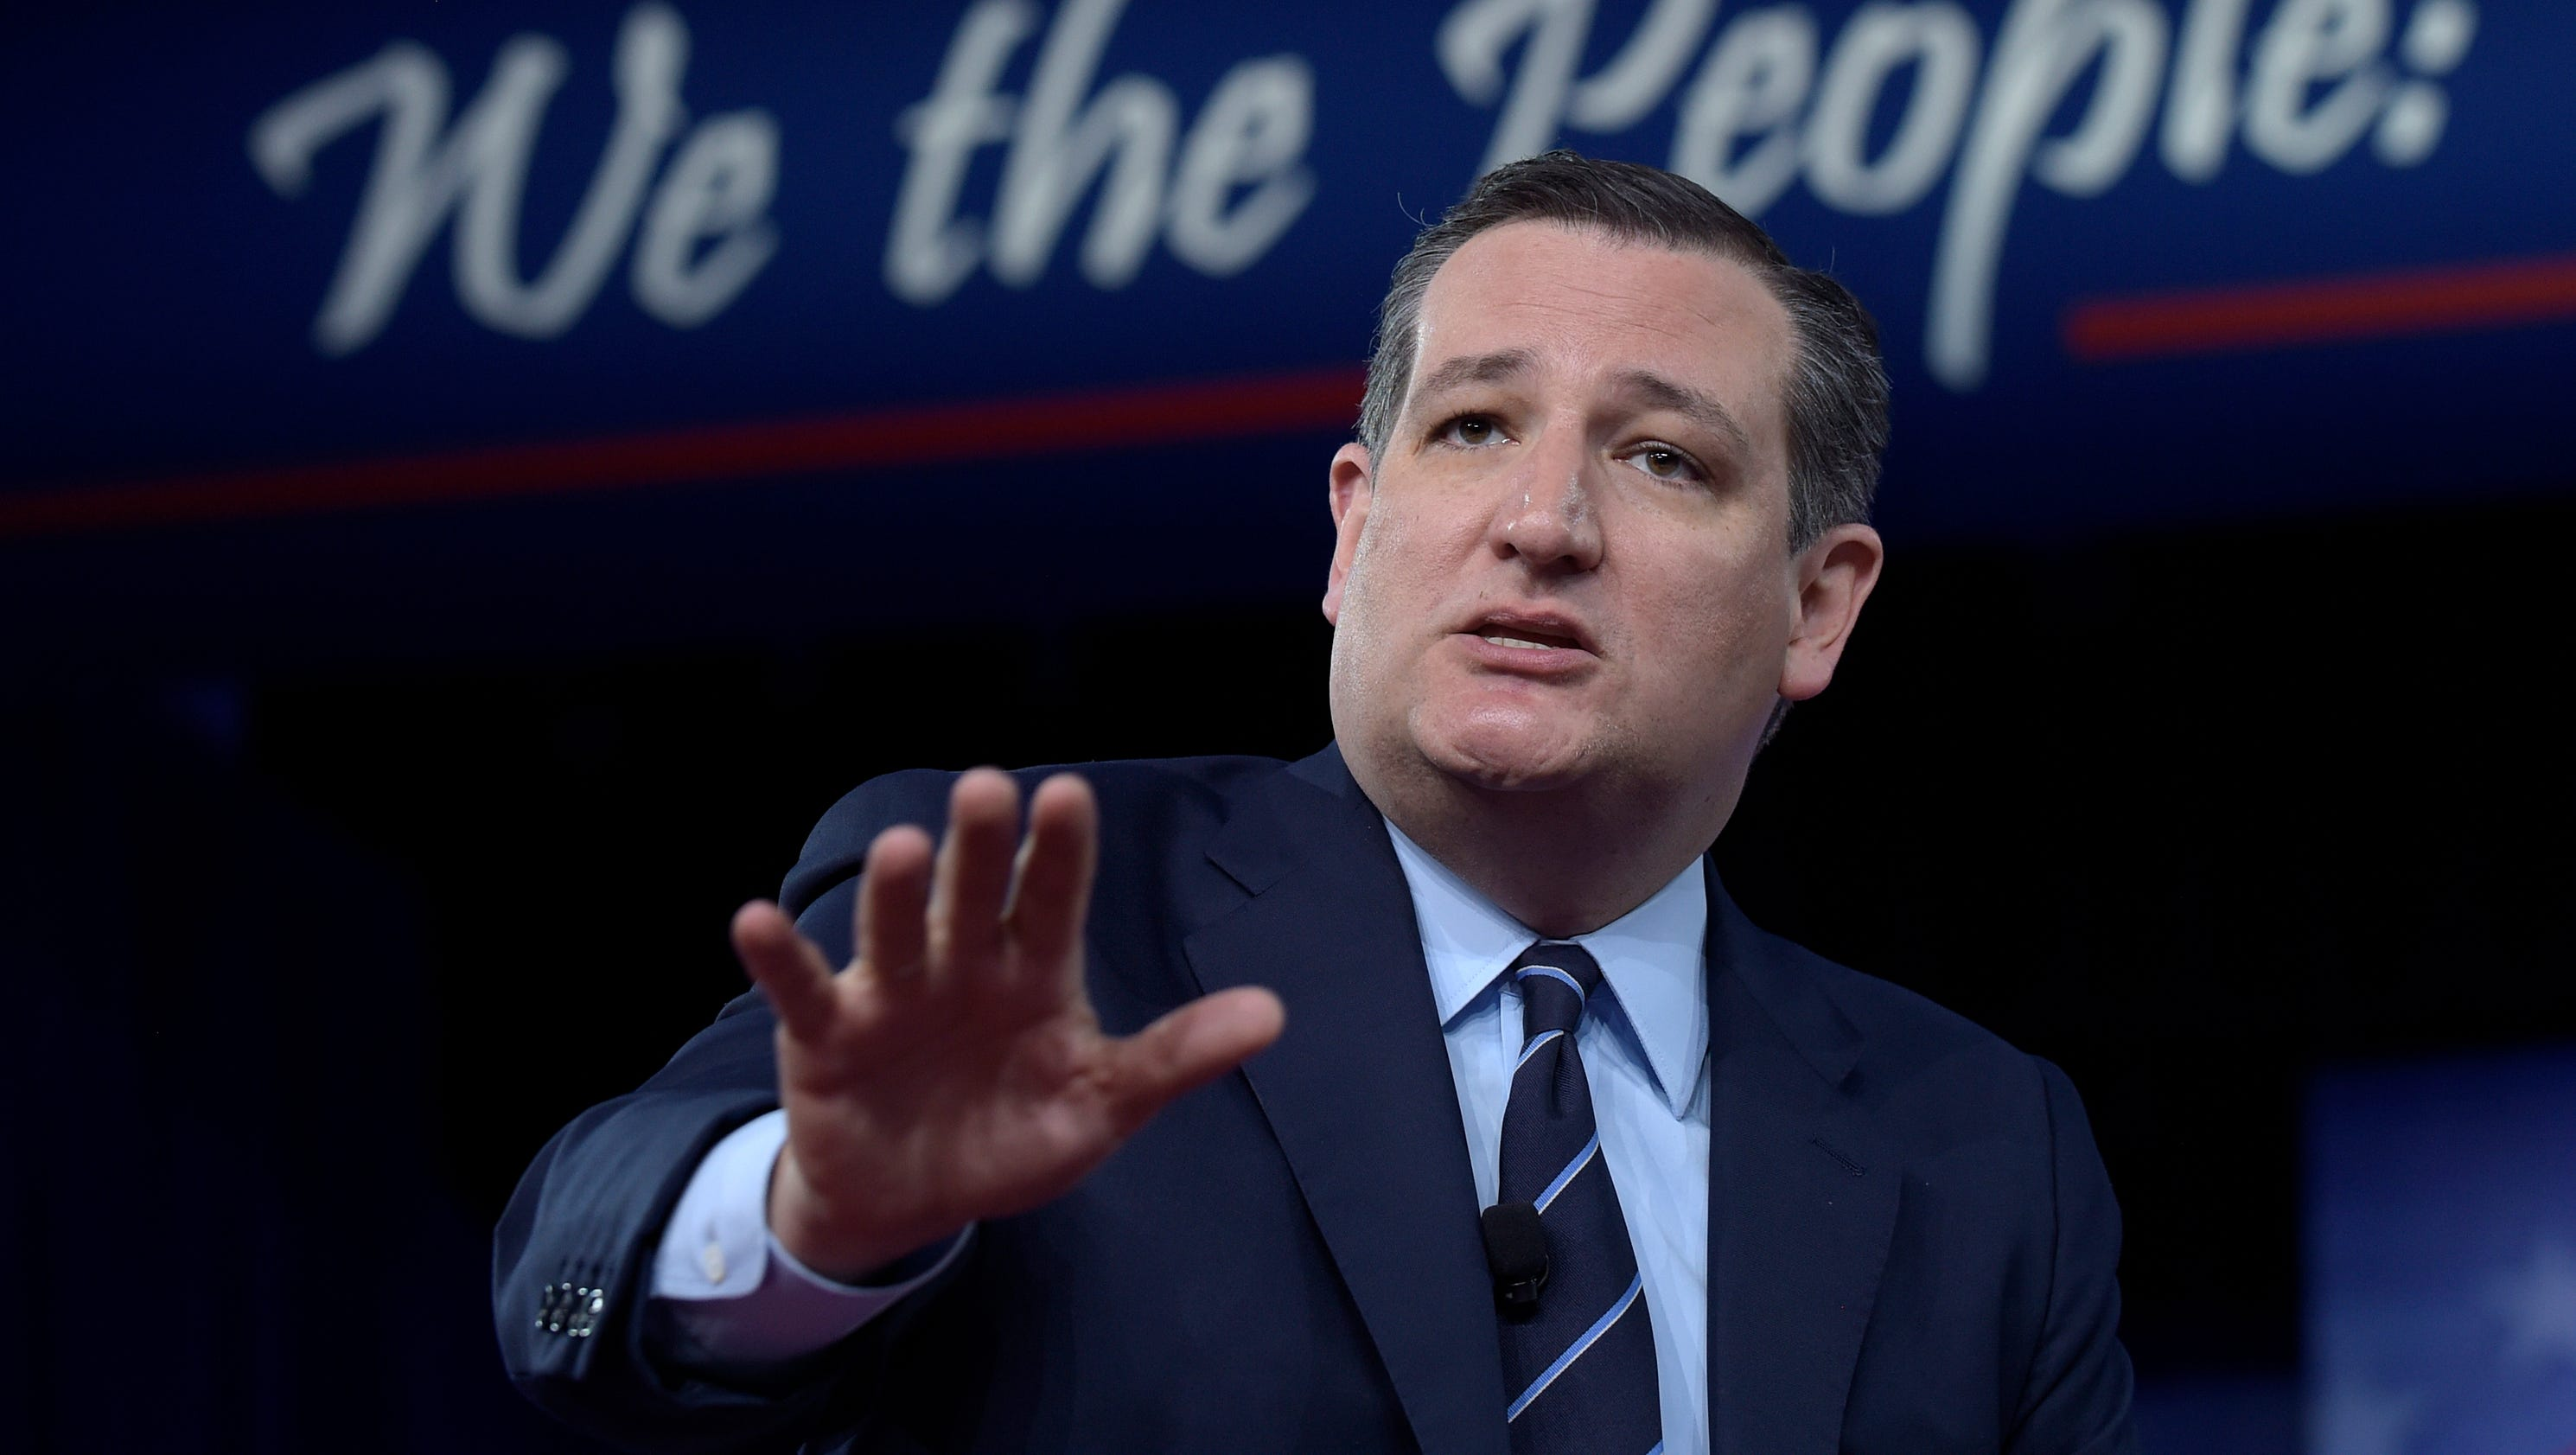 Ted Cruz Quotes Ted Cruz Blasts Veteran Lawmakers For 'corruption'